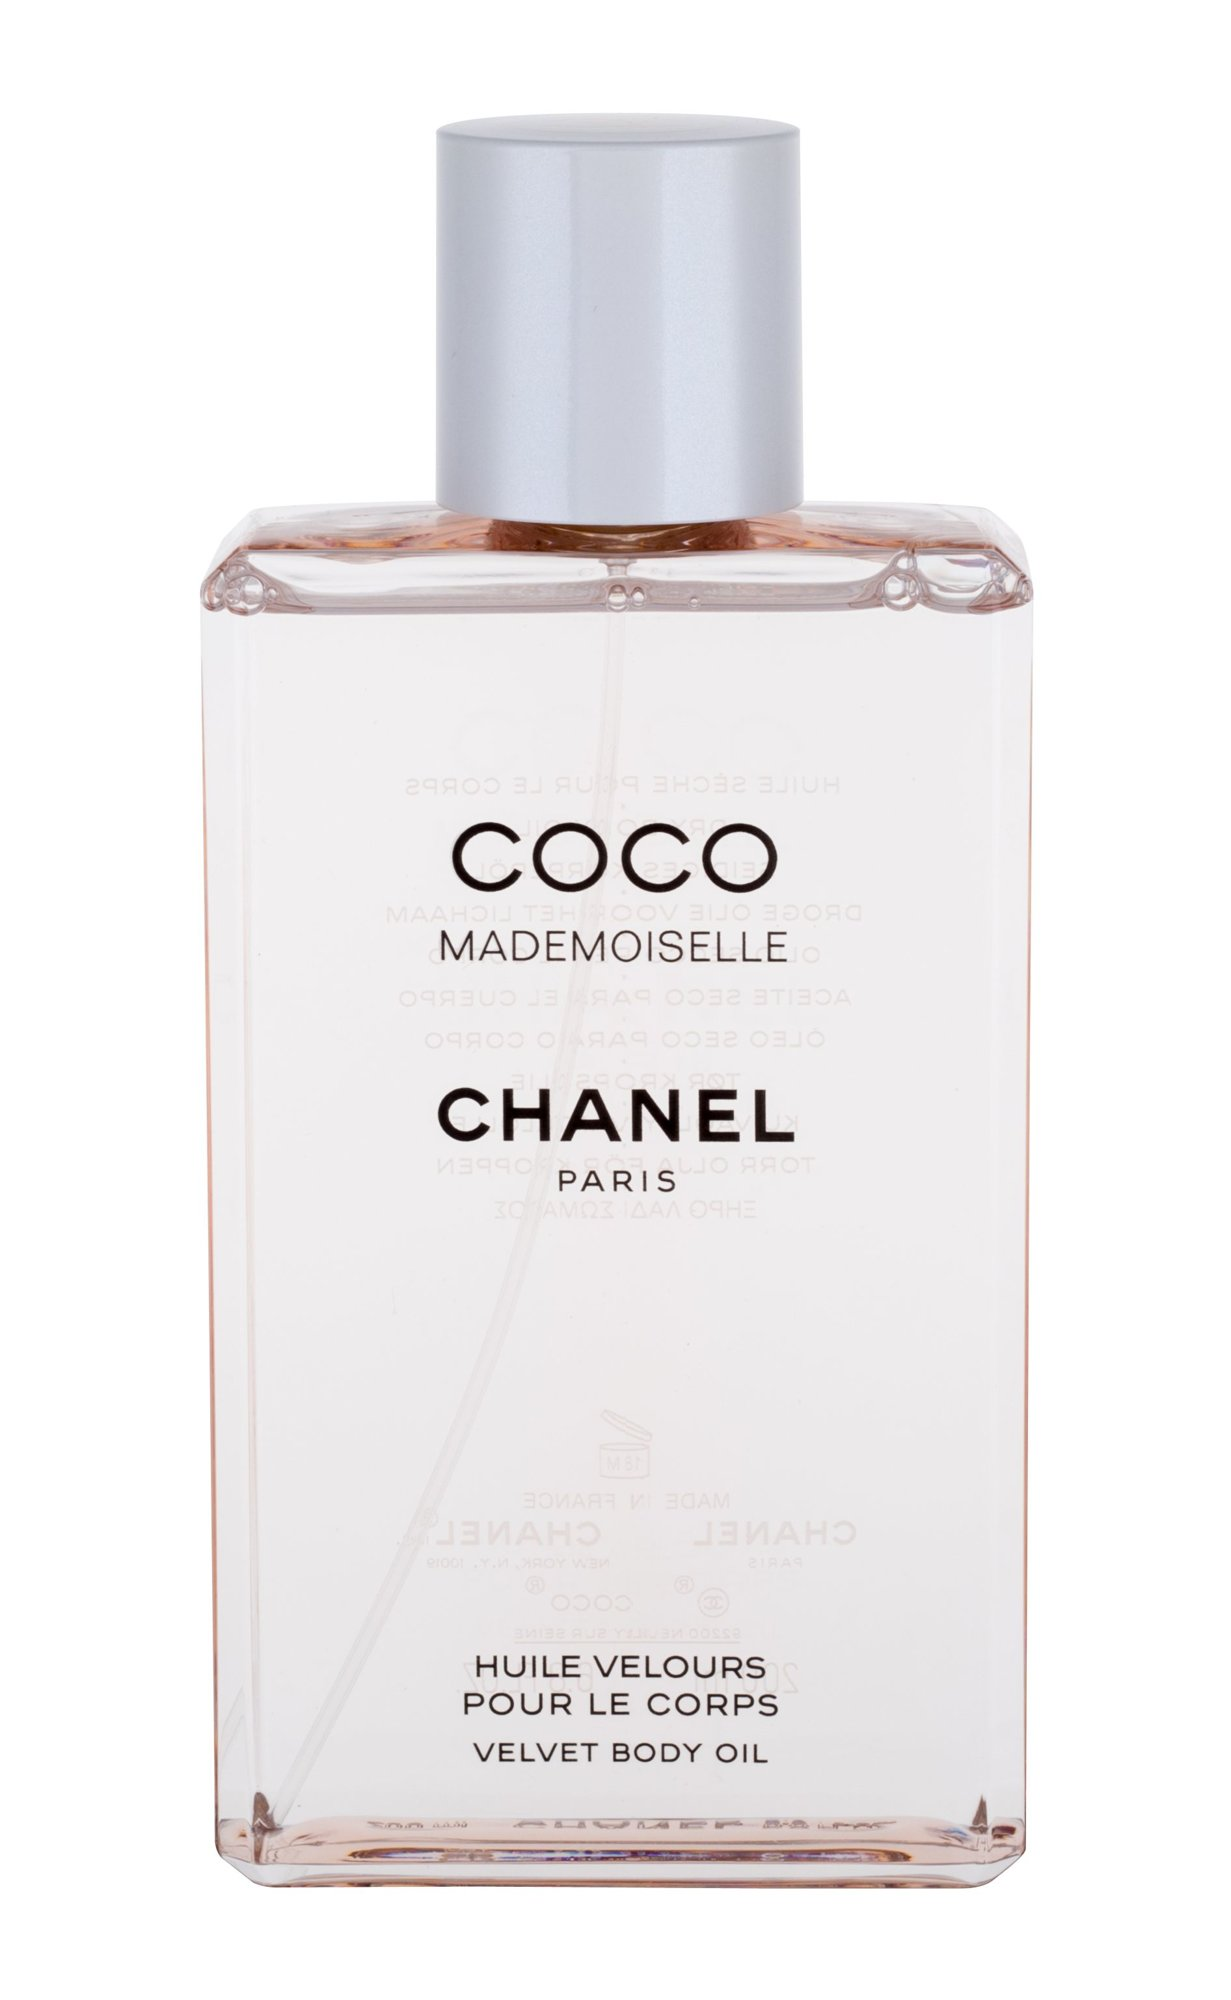 Chanel Coco Mademoiselle Perfumed oil 200ml